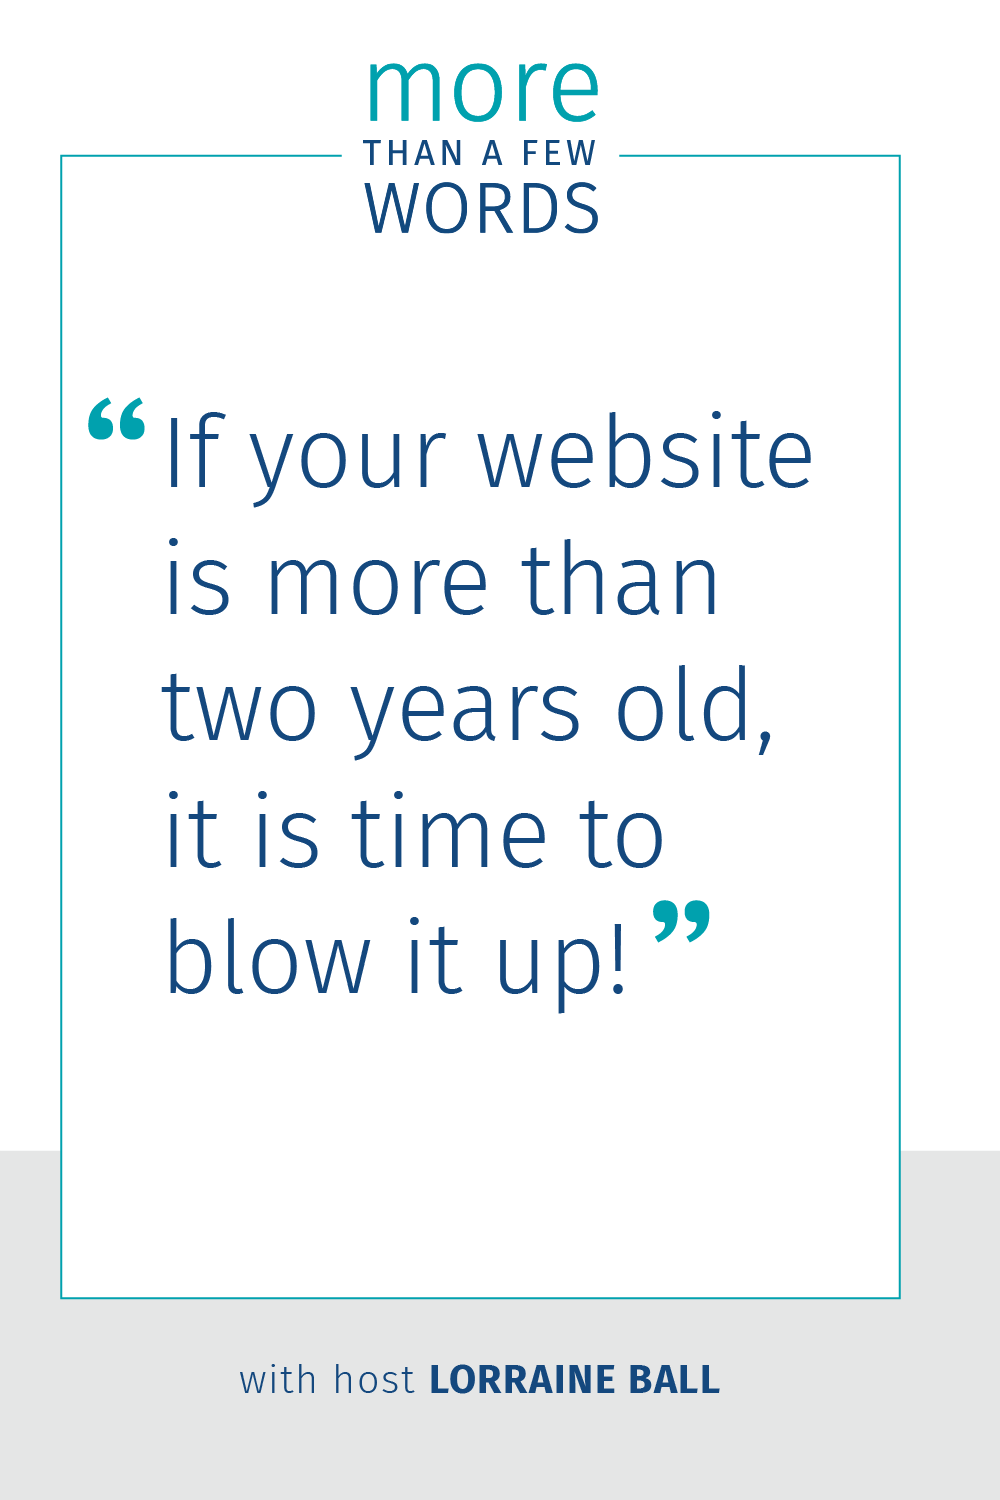 If your website is more than two years old it is time to blow up your website